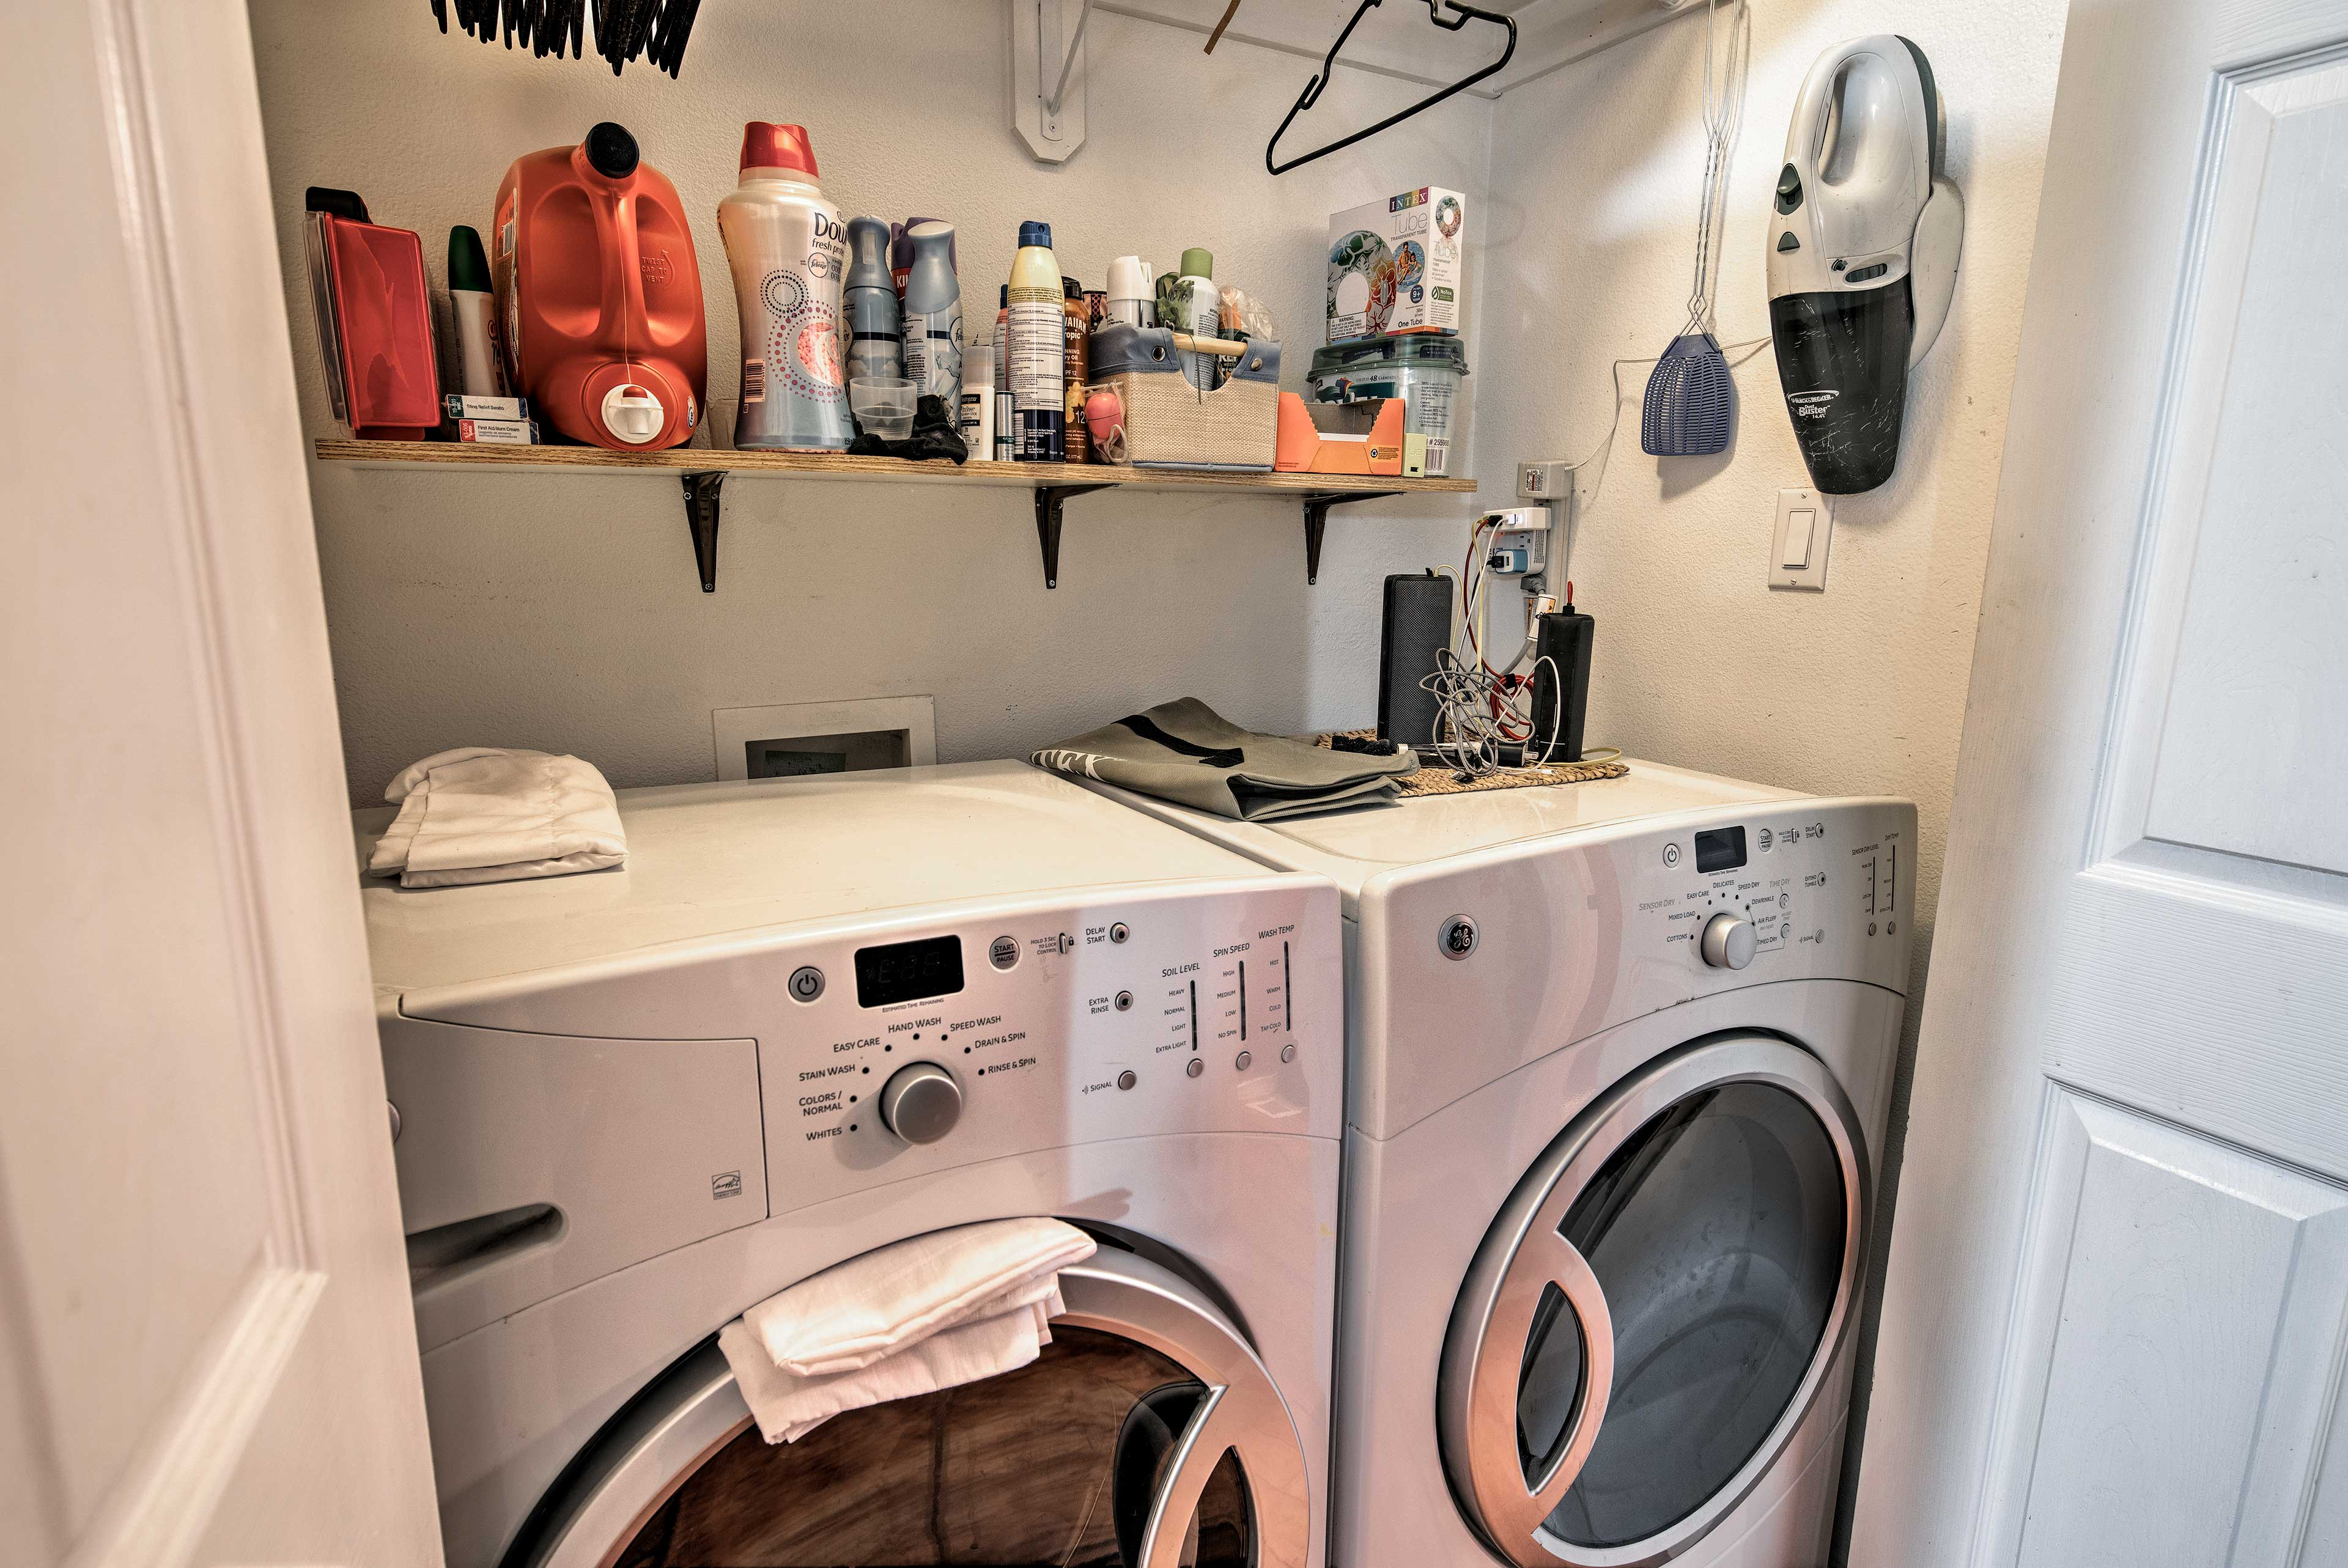 In-unit laundry machines are always useful.